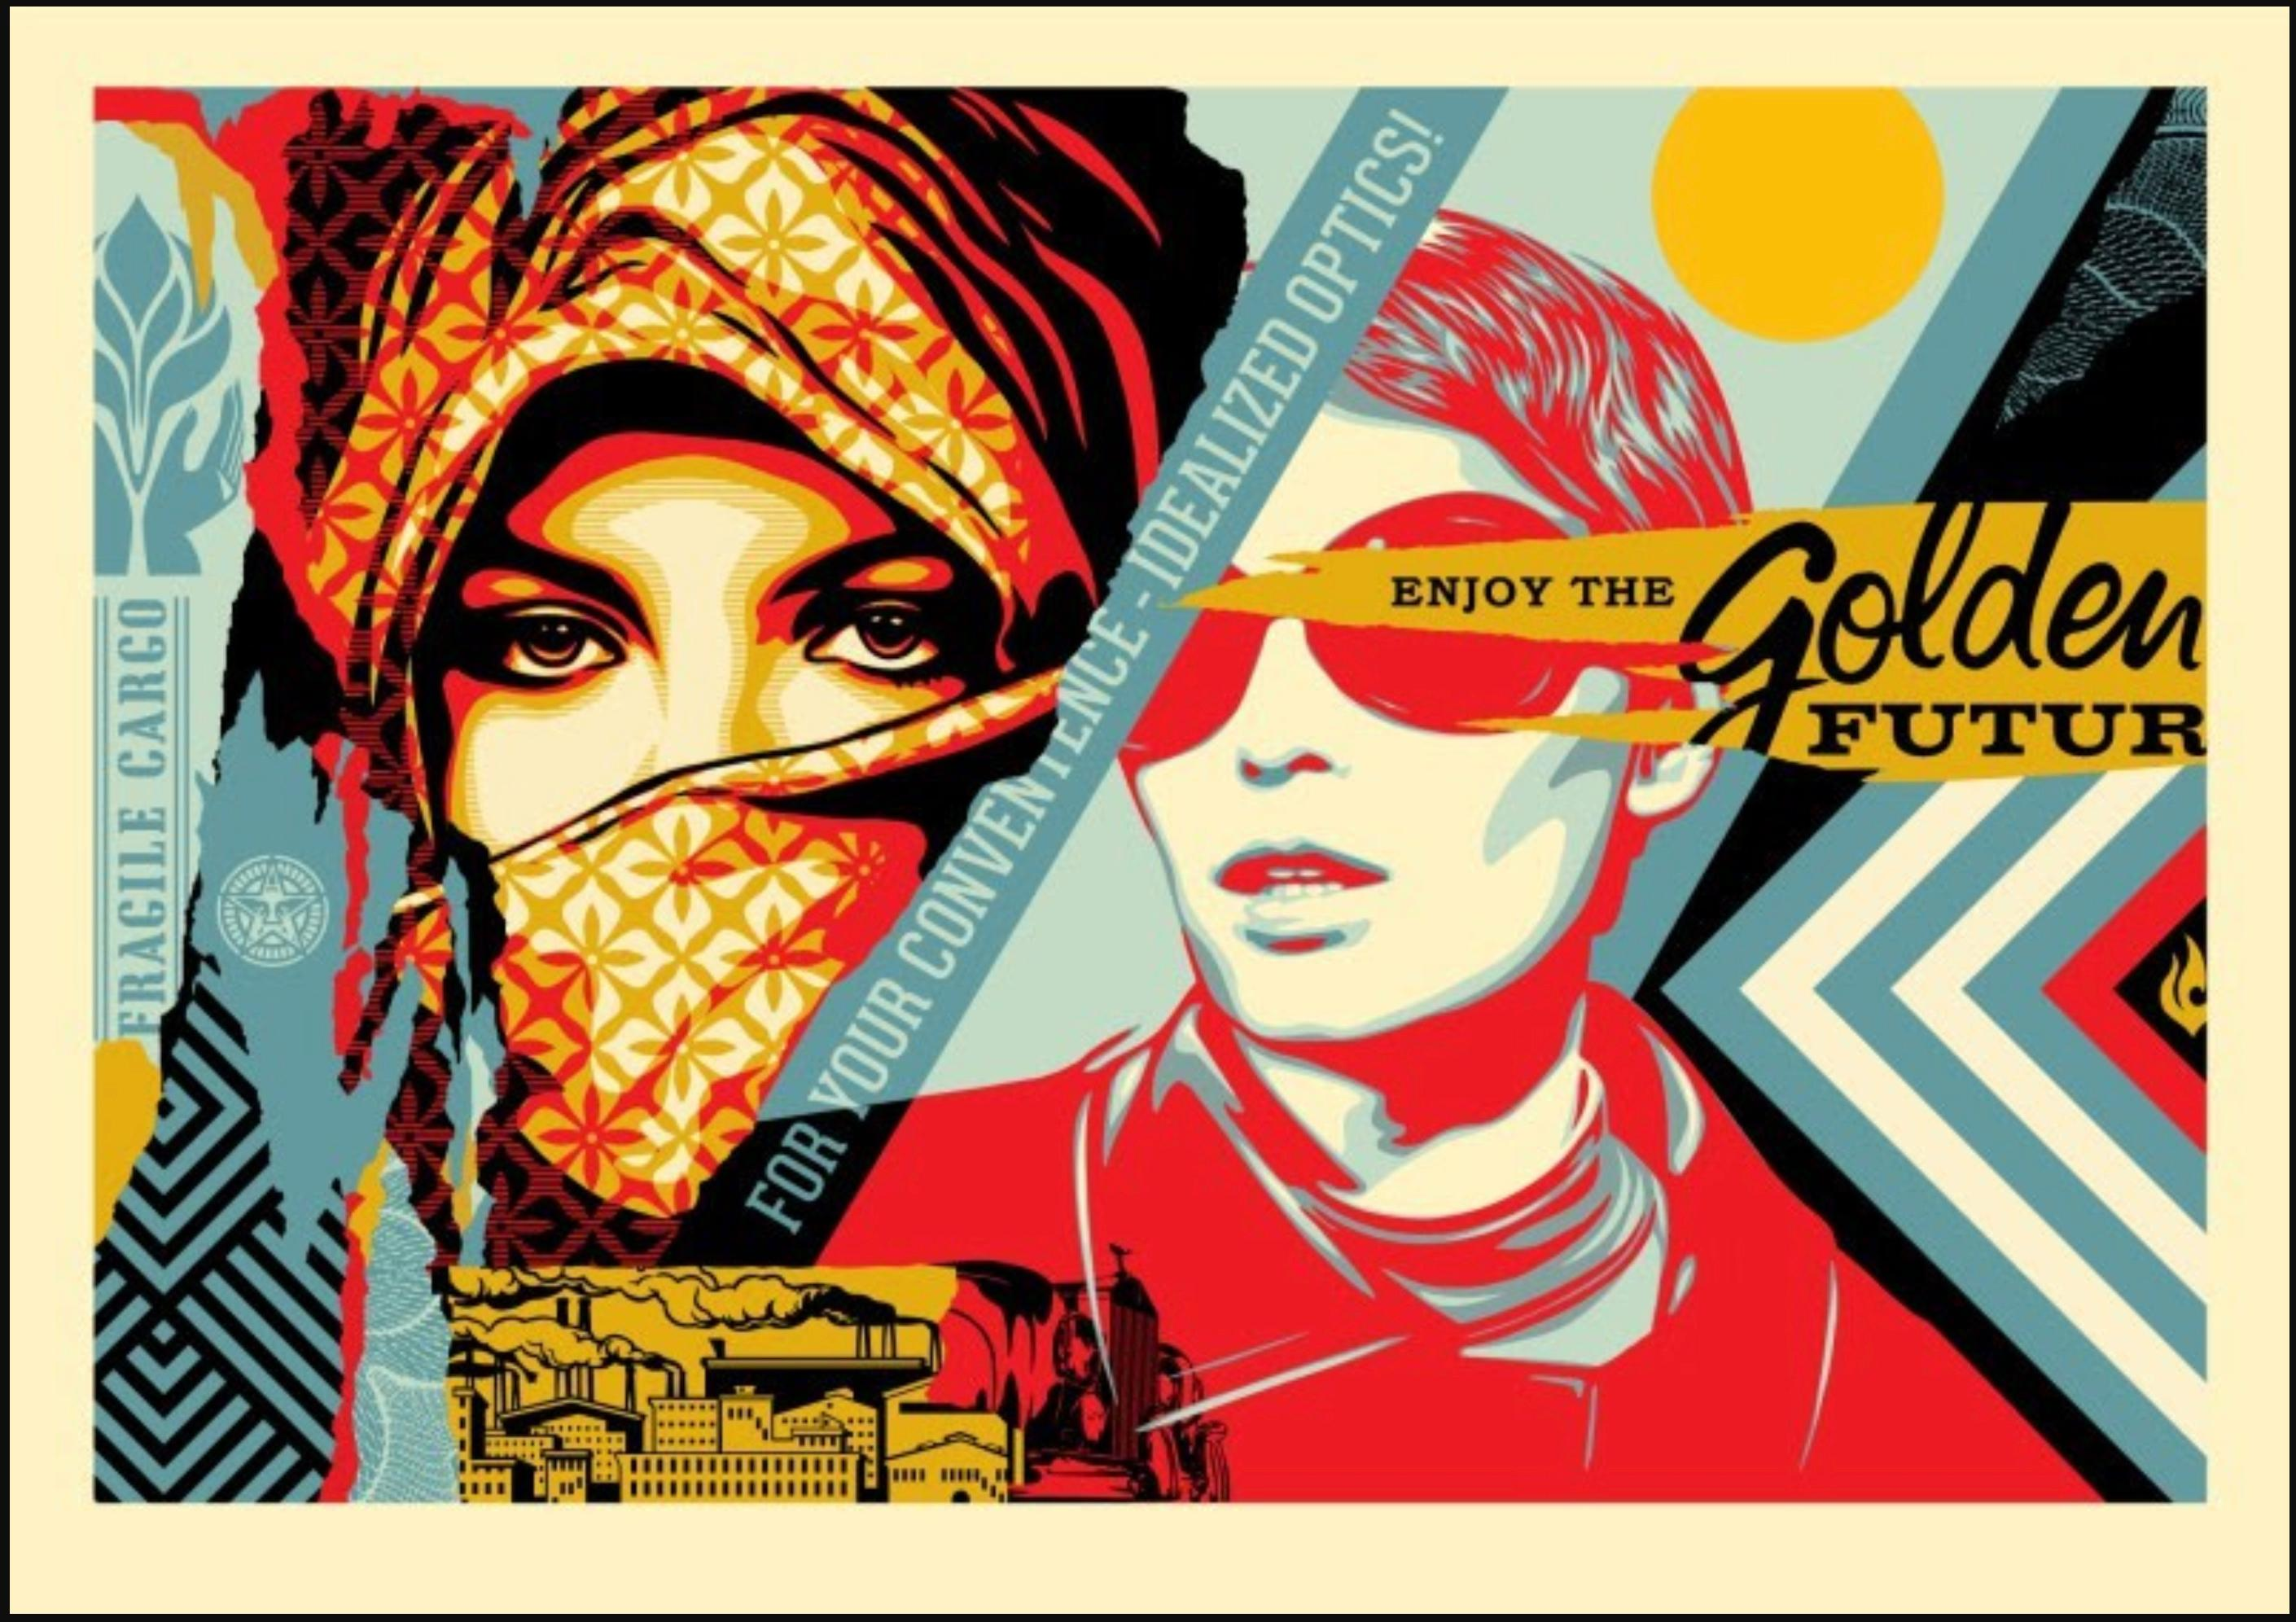 Shepard Fairey - Obey Giant - Golden Future - Urban Graffiti Street Art Print